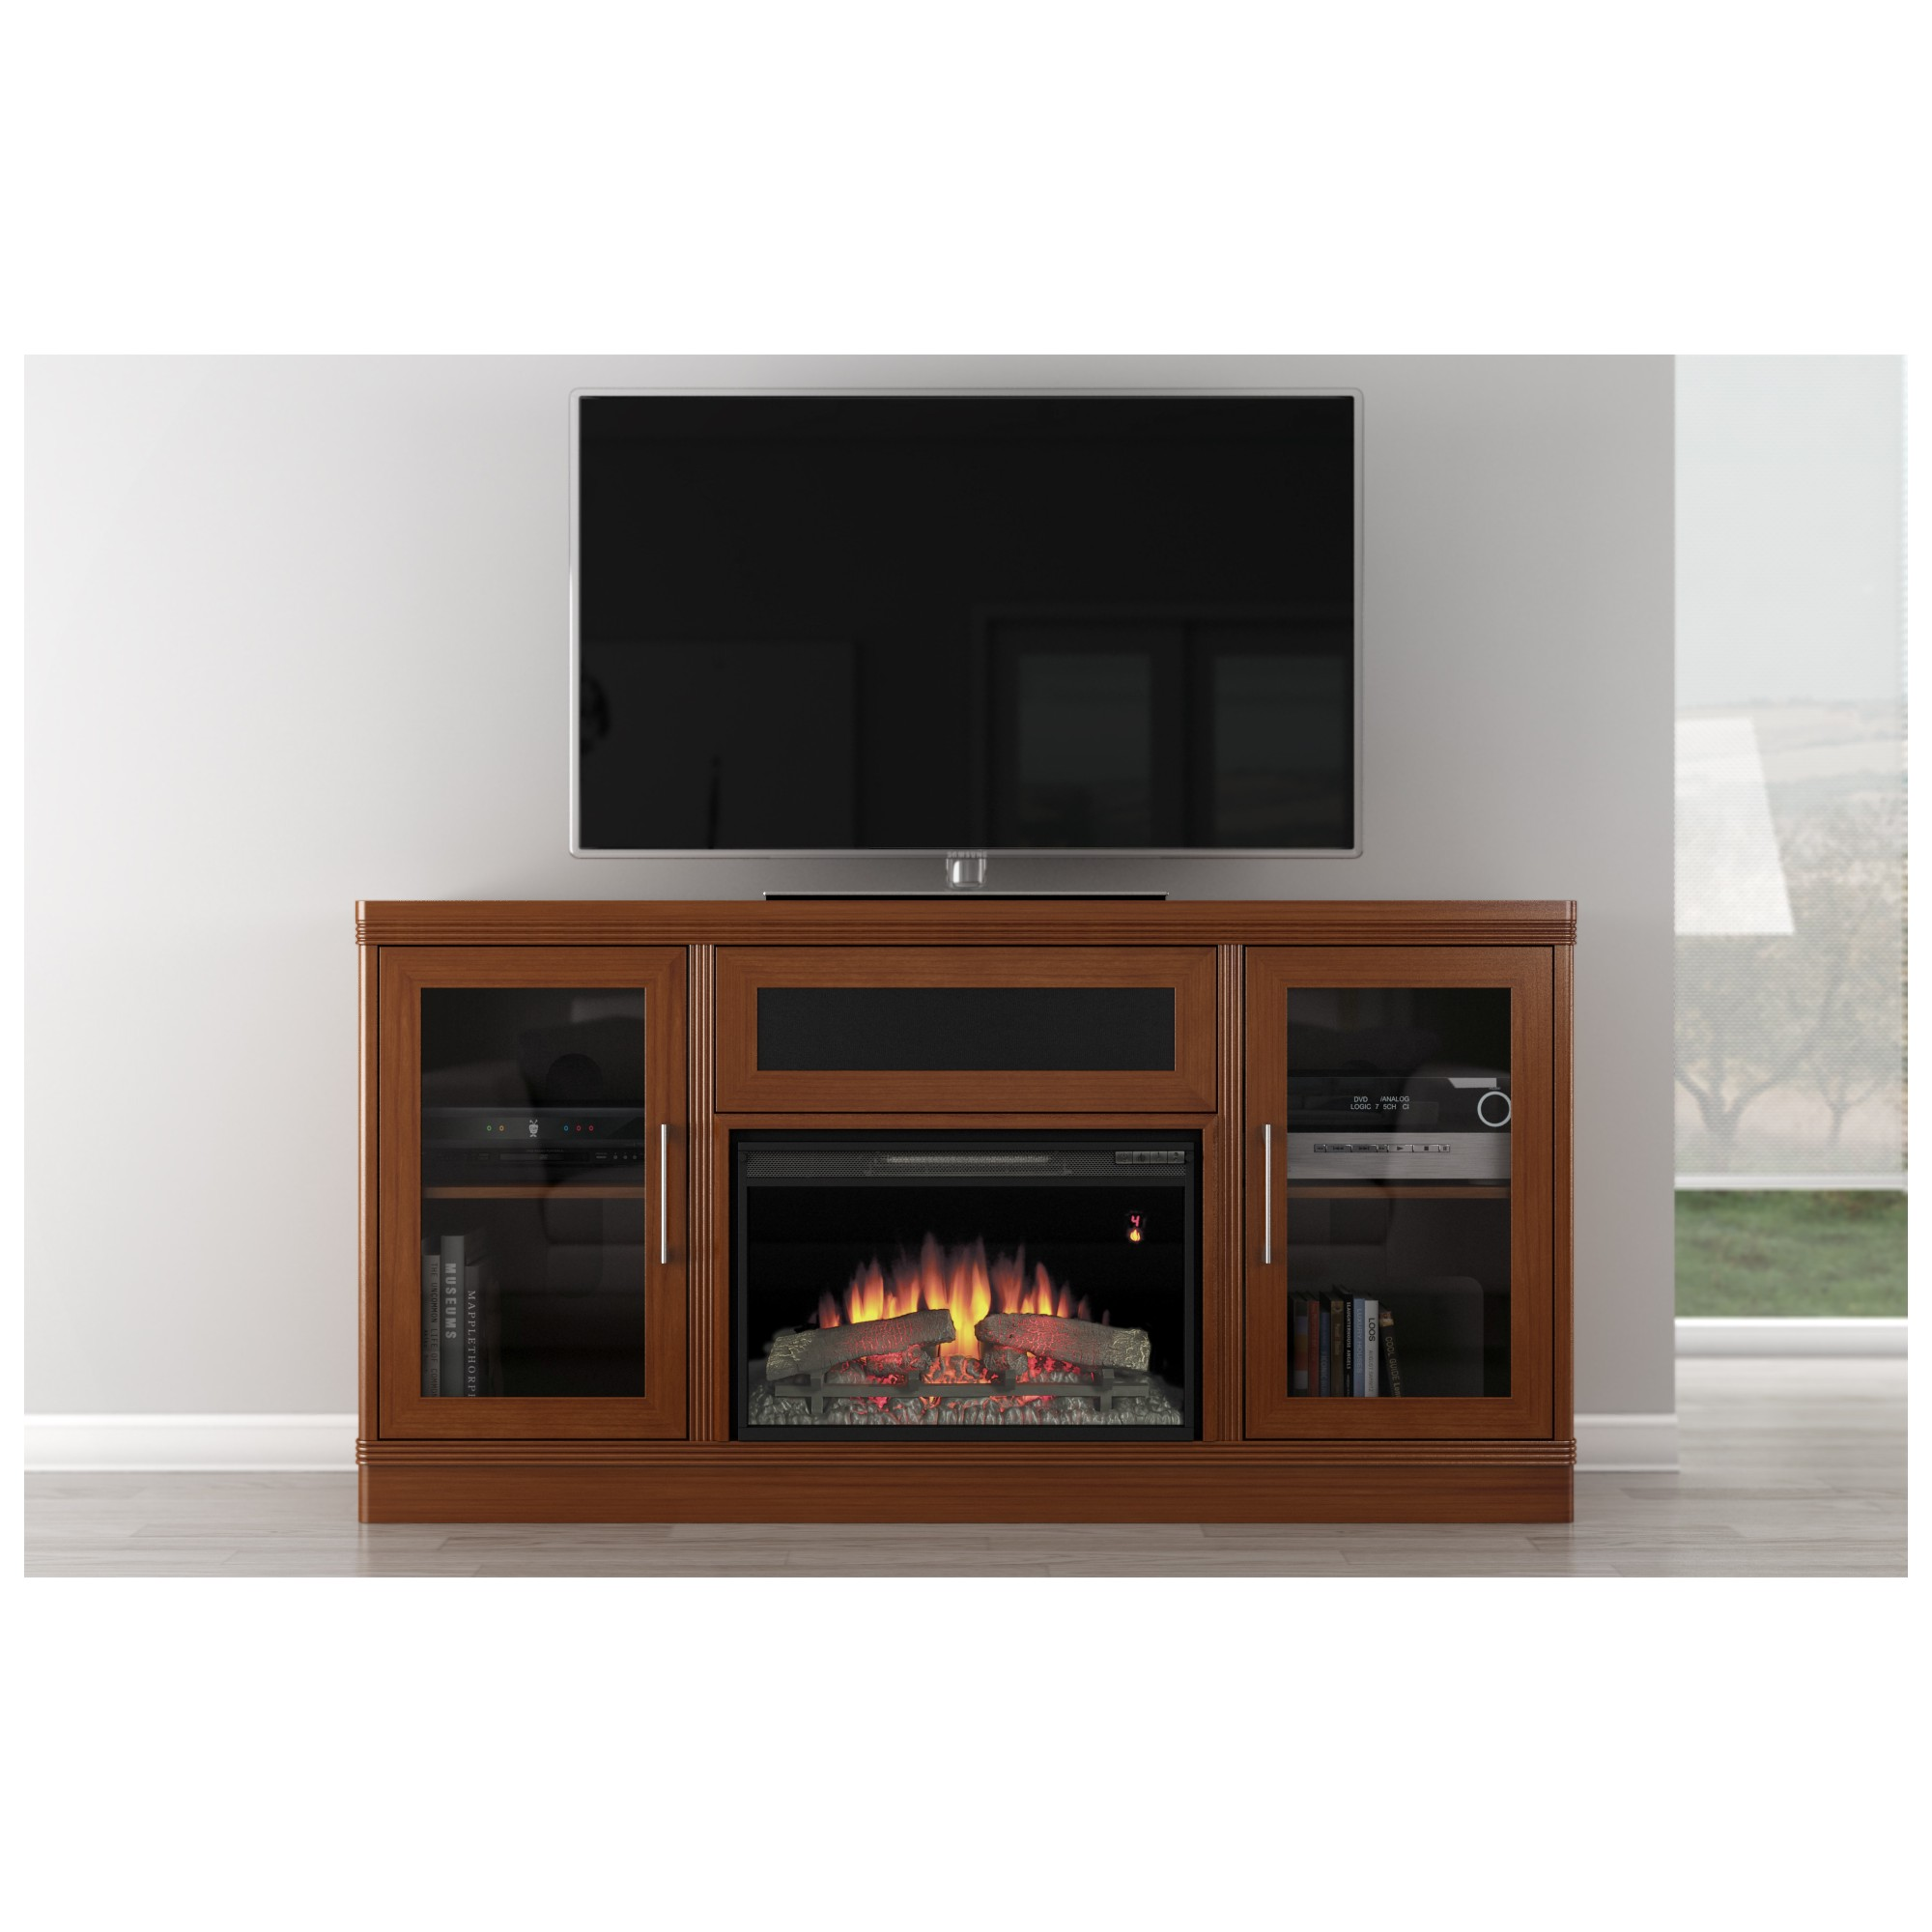 Furnitech Ft70trfb 70 Tv Stand Transitional Style W Classic Flame Electrical Fireplace In